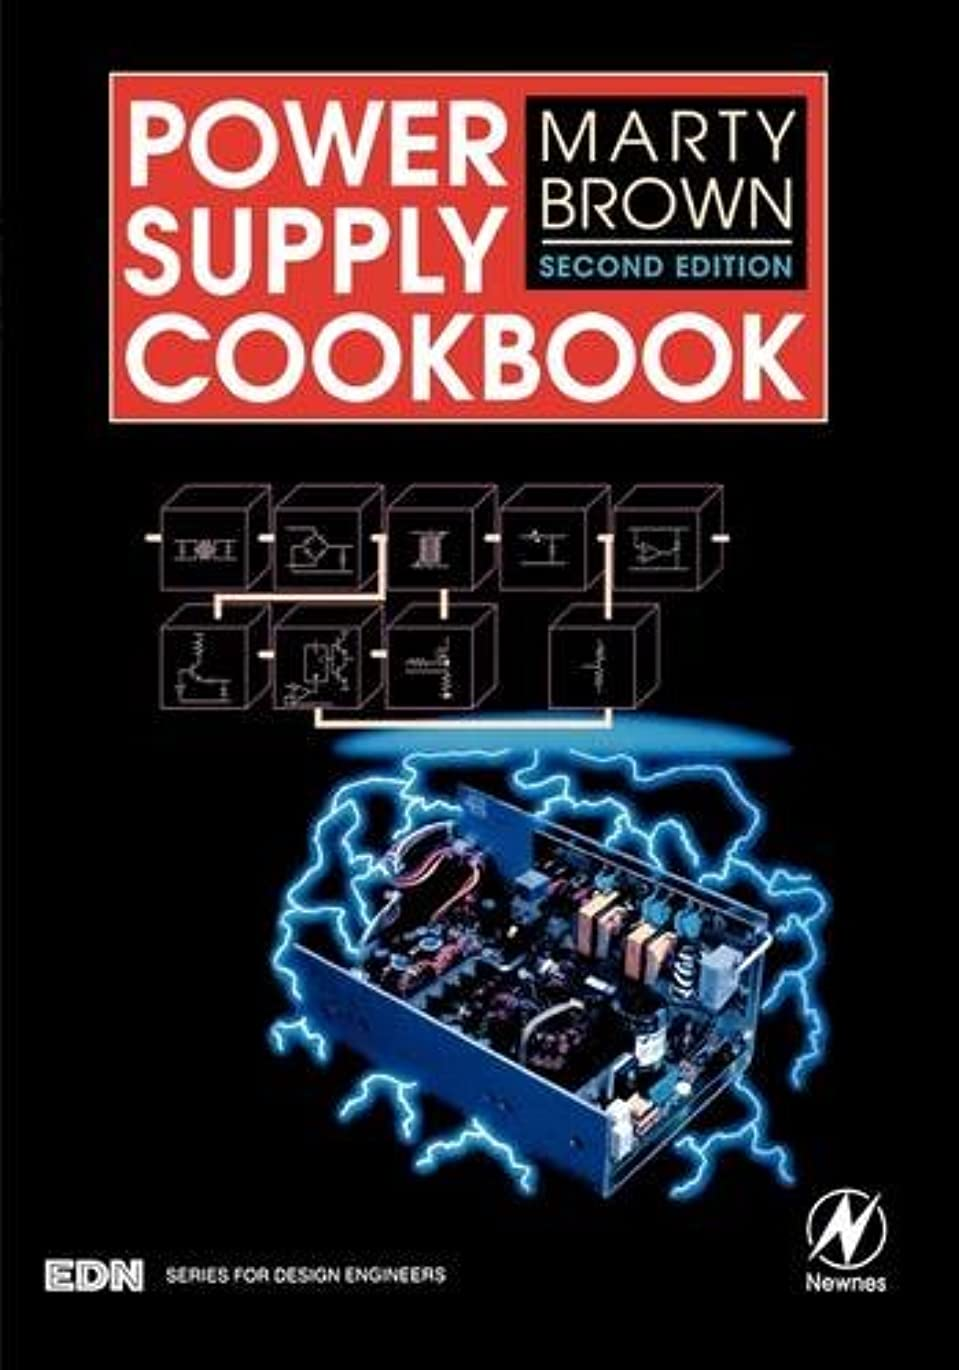 る焦げ性差別Power Supply Cookbook, Second Edition (EDN Series for Design Engineers)